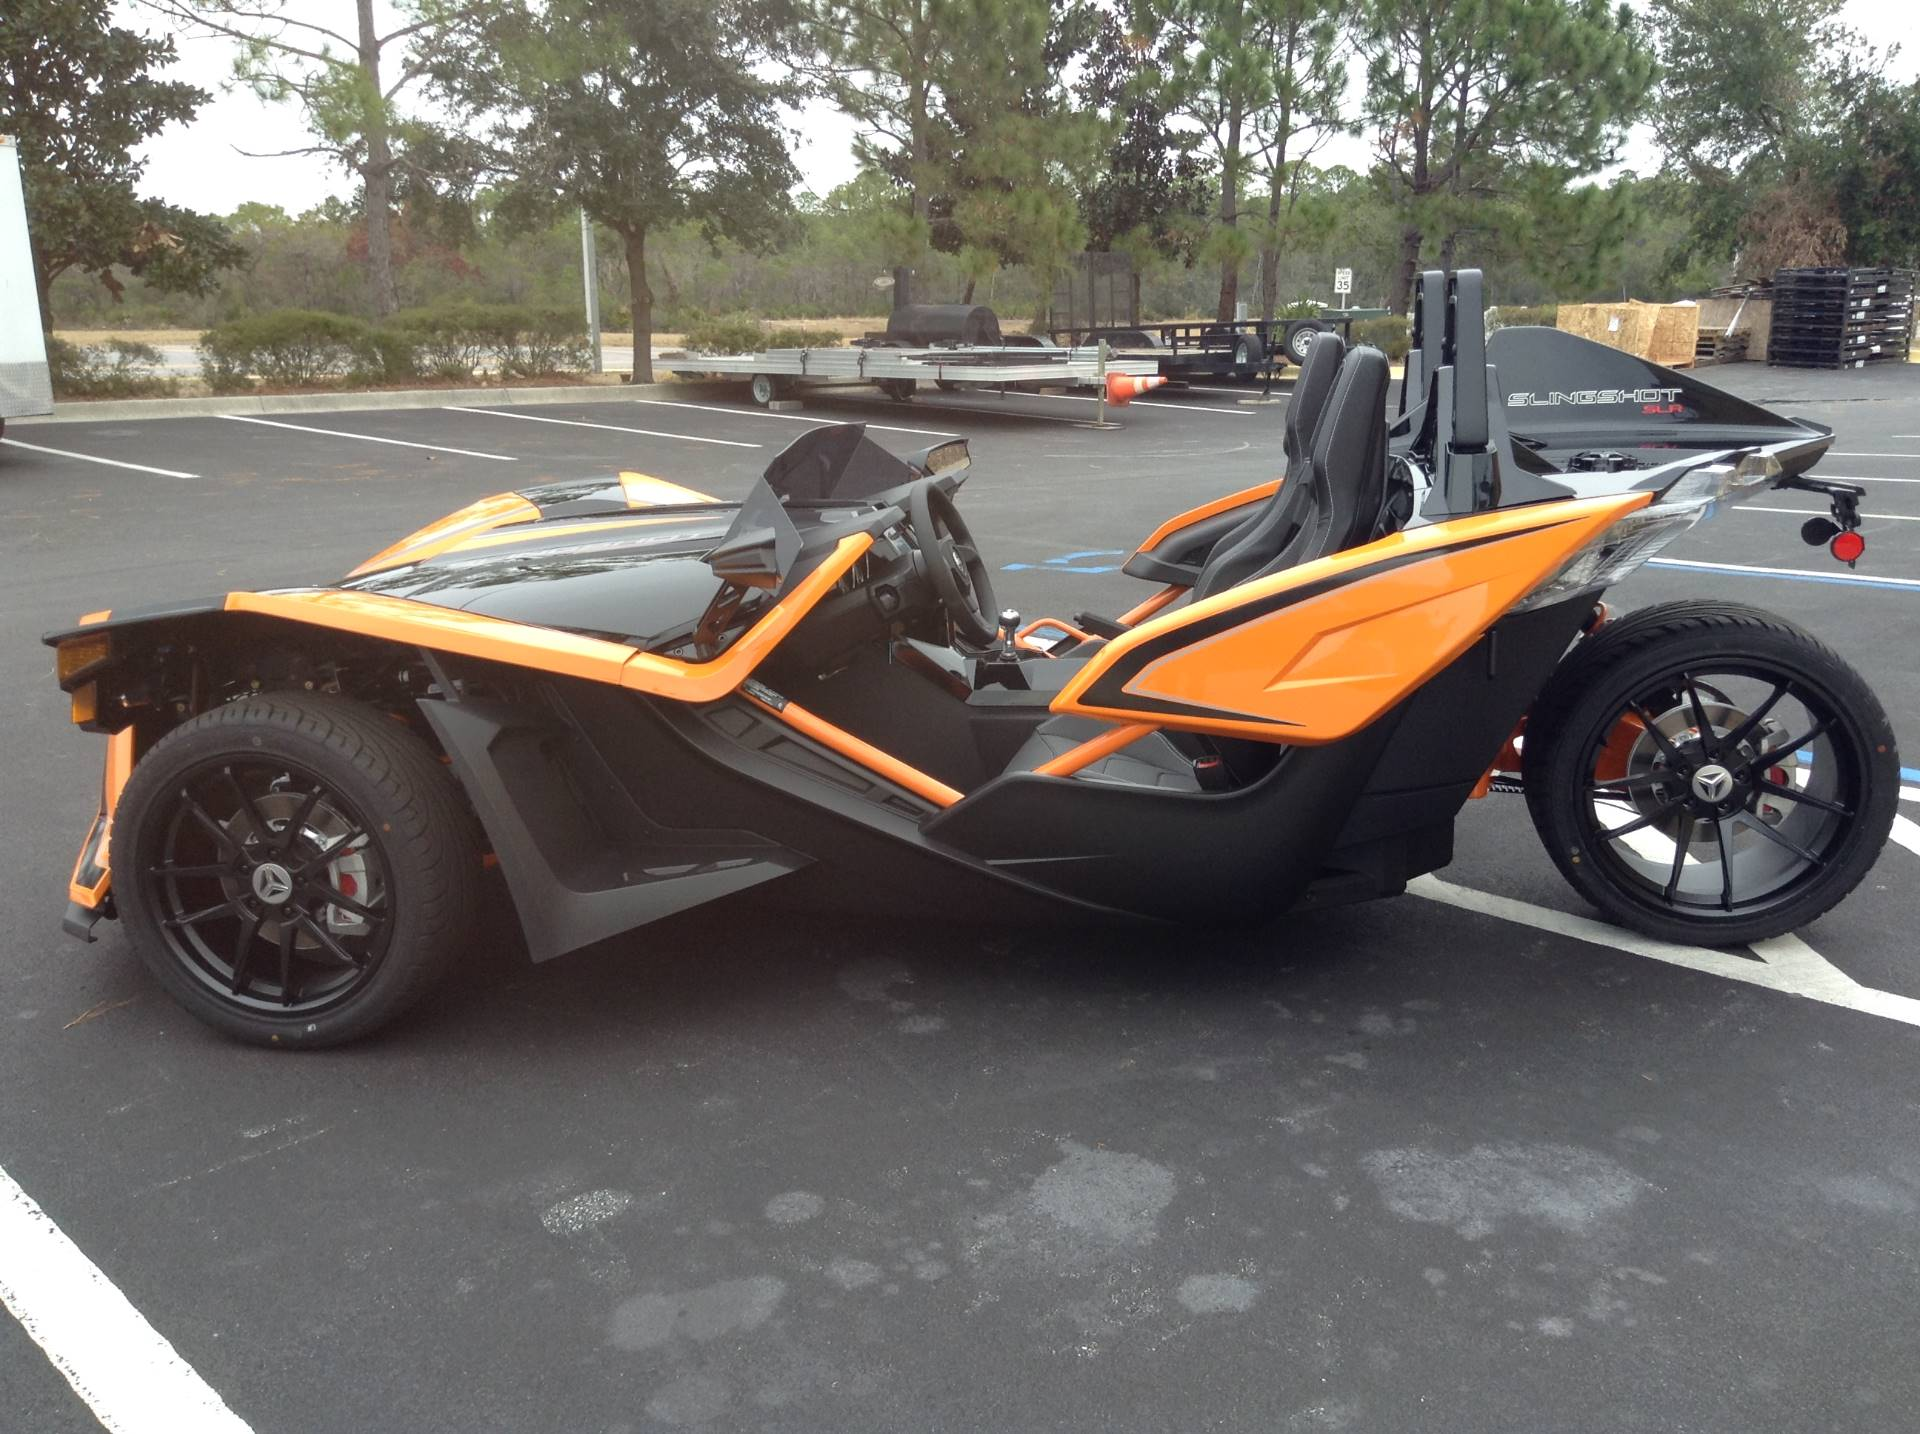 2019 Polaris Slingshot SLR in Panama City Beach, Florida - Photo 6